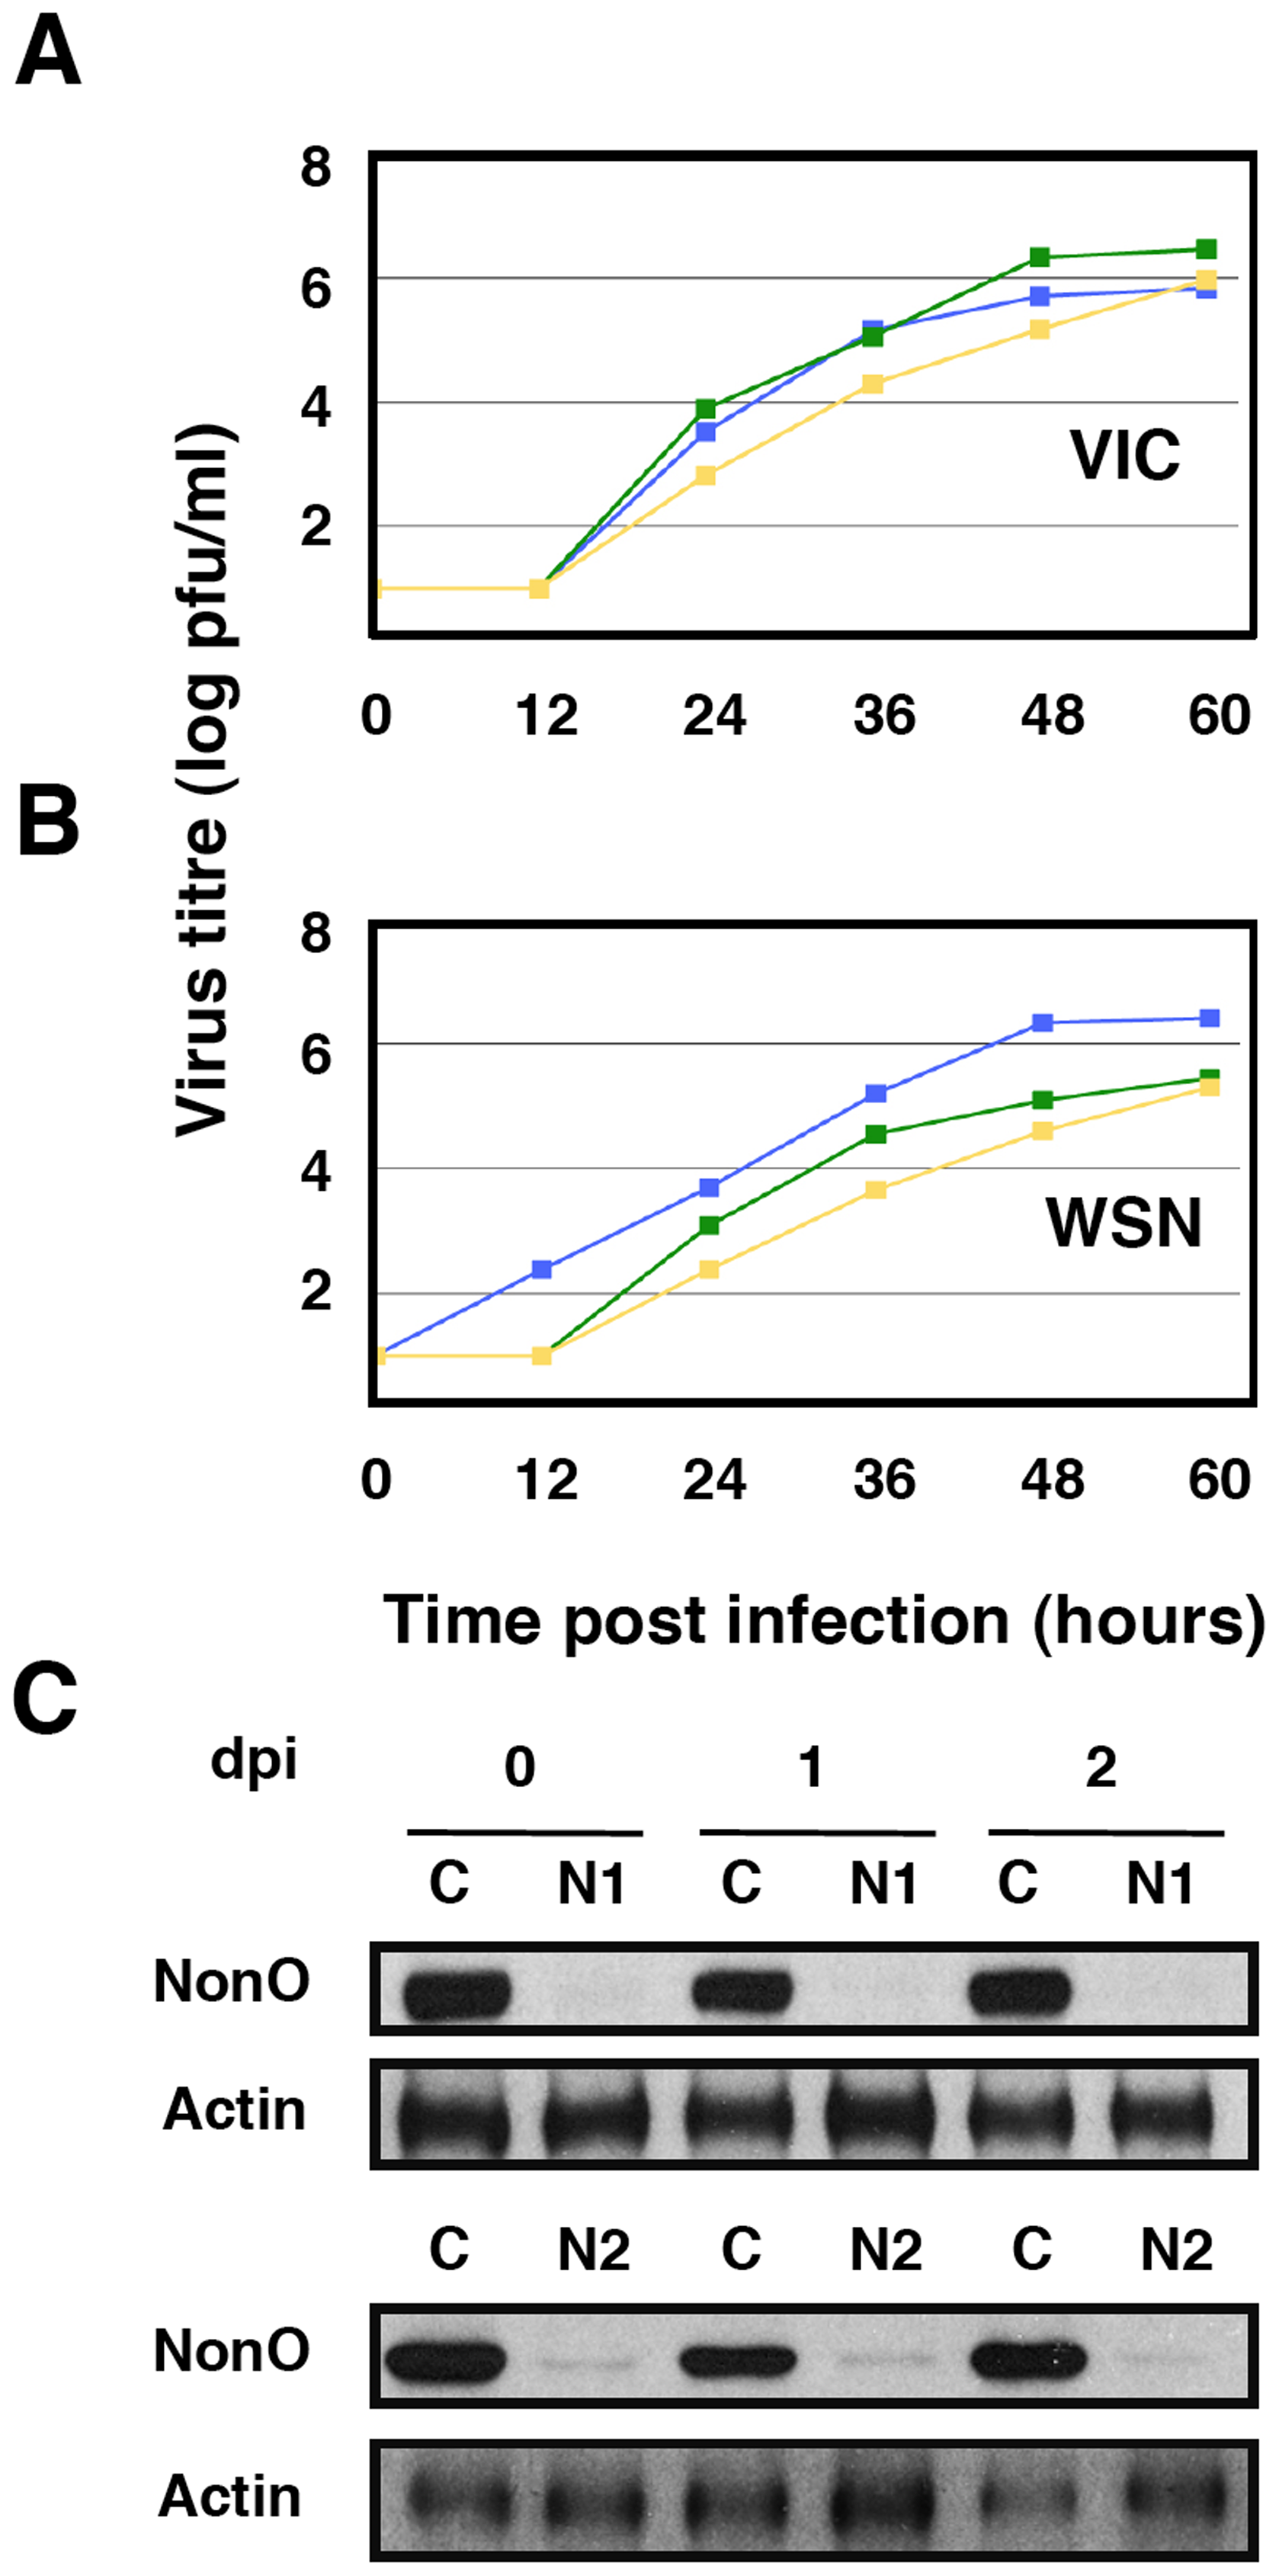 Kinetics of influenza virus multiplication in NonO-silenced cells.